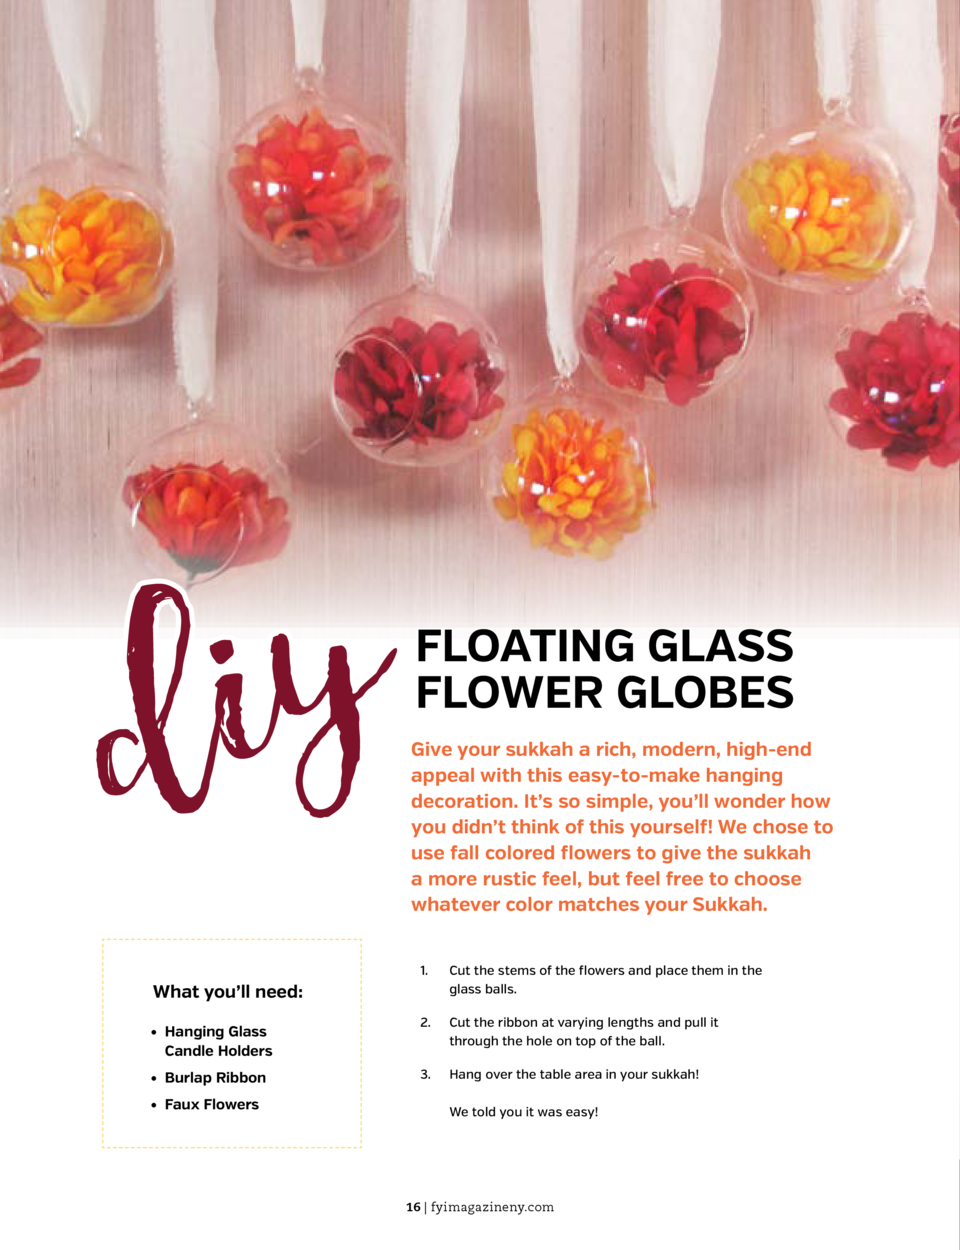 THE BEAUTY GUIDE  THE BEAUTY GUIDE  id y  FLOATING GLASS FLOWER GLOBES Give your sukkah a rich, modern, high-end appeal wi...